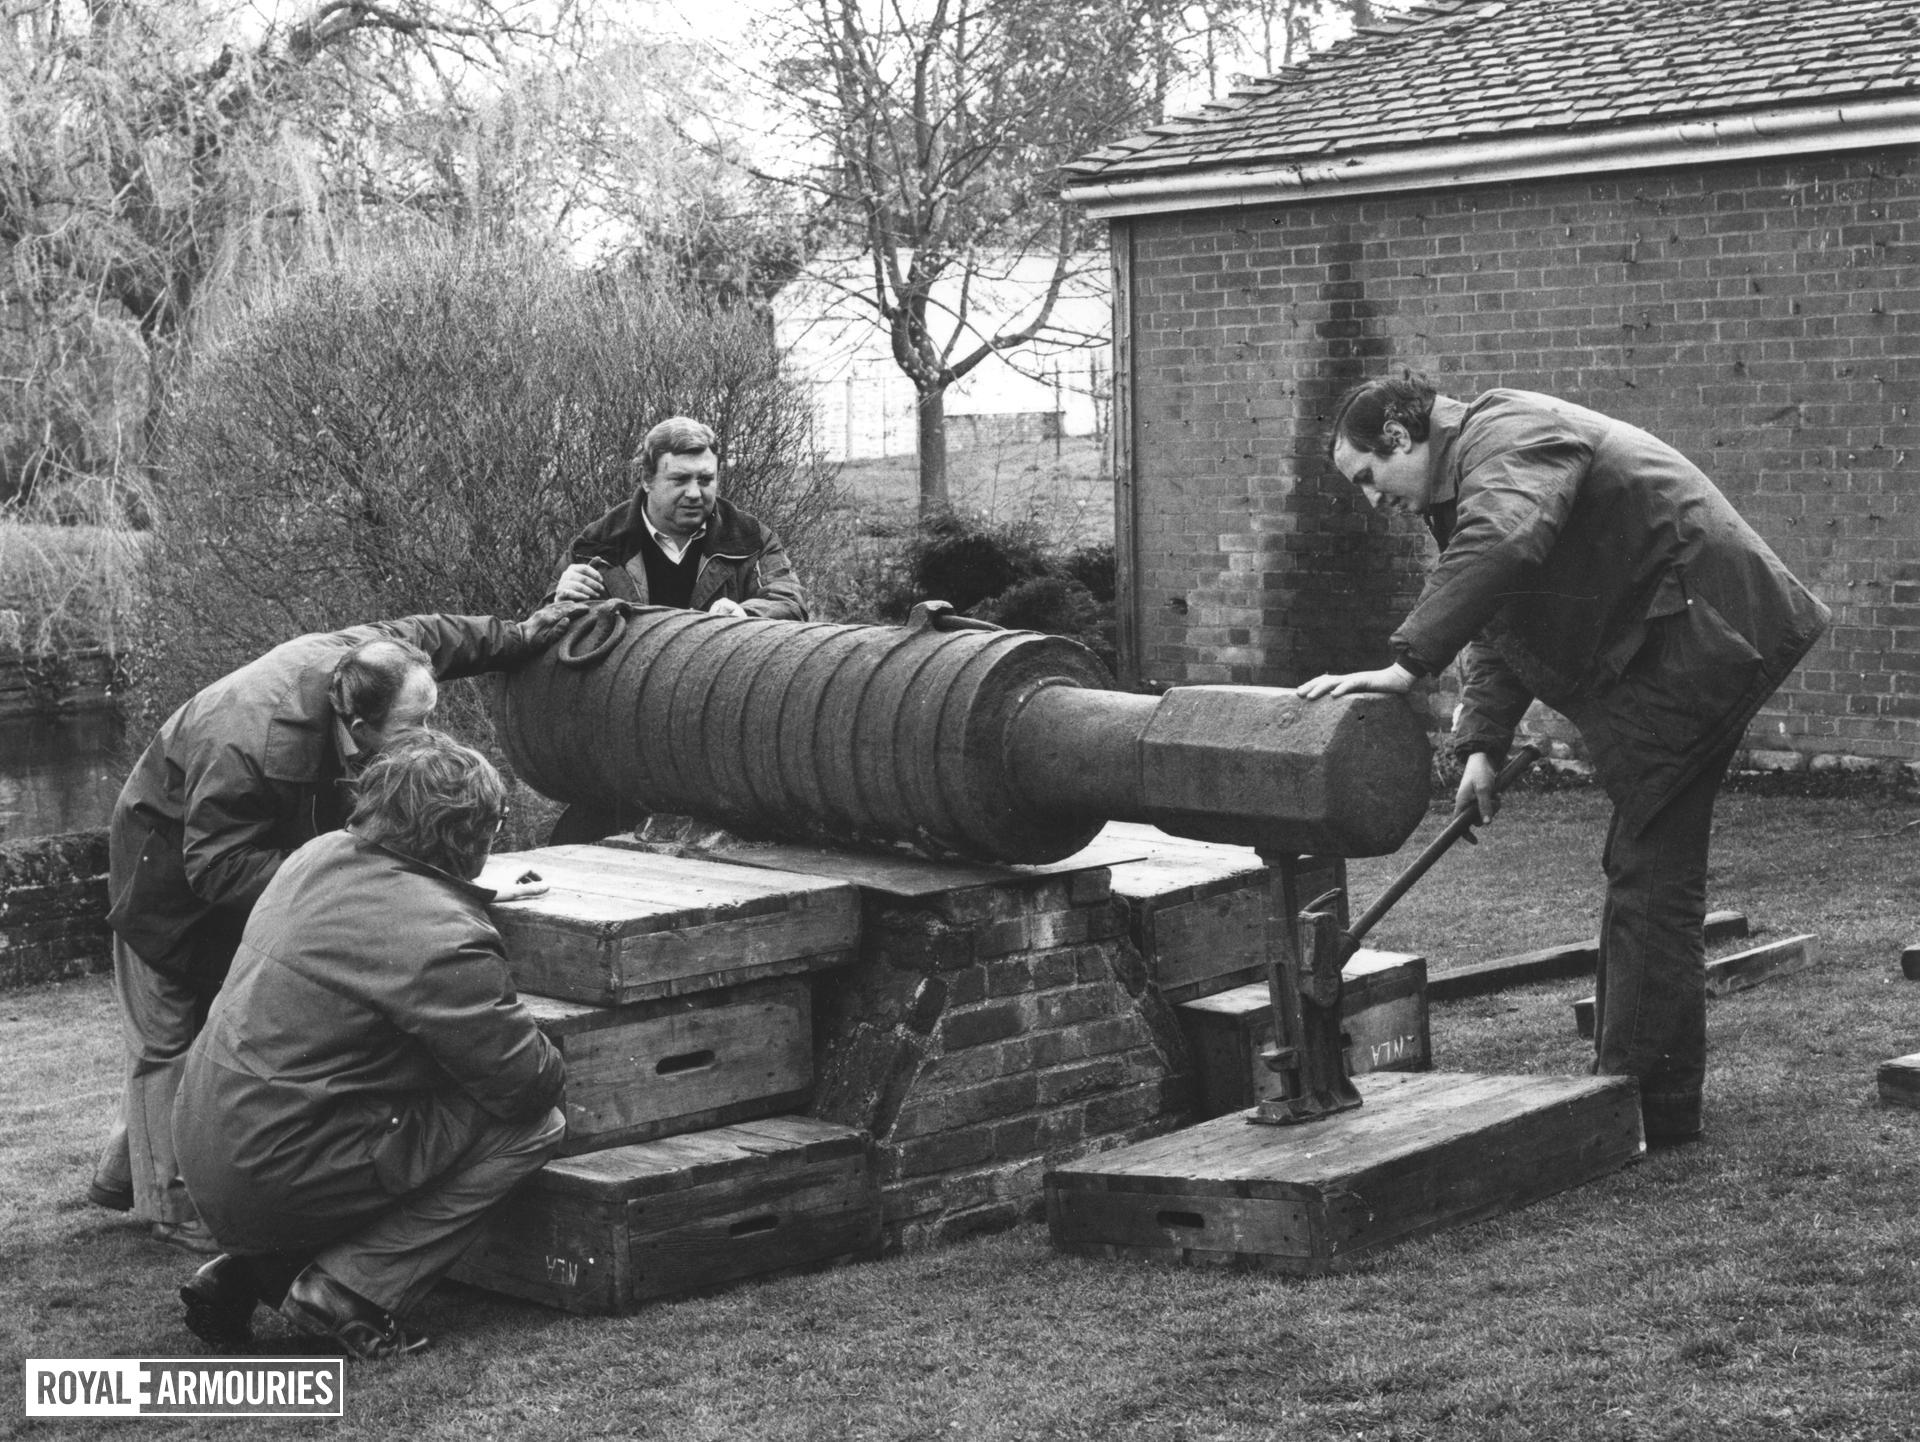 13 in Bombard - The Boxted Bombard Made of Iron